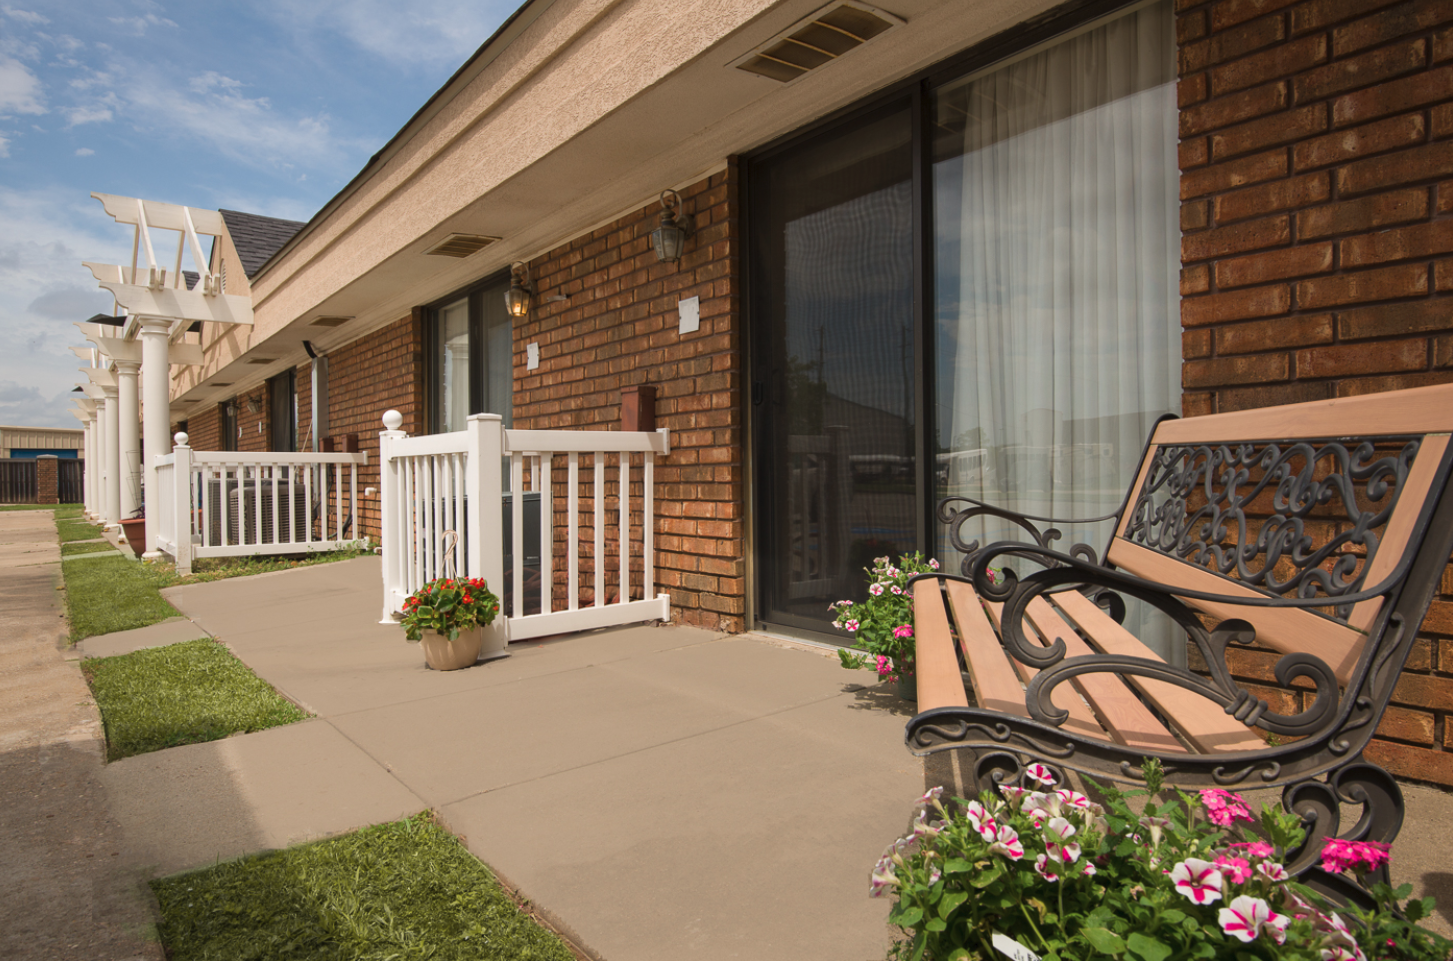 The Gables at Spring Lake Assisted Living [Senior Care Centers] image 2